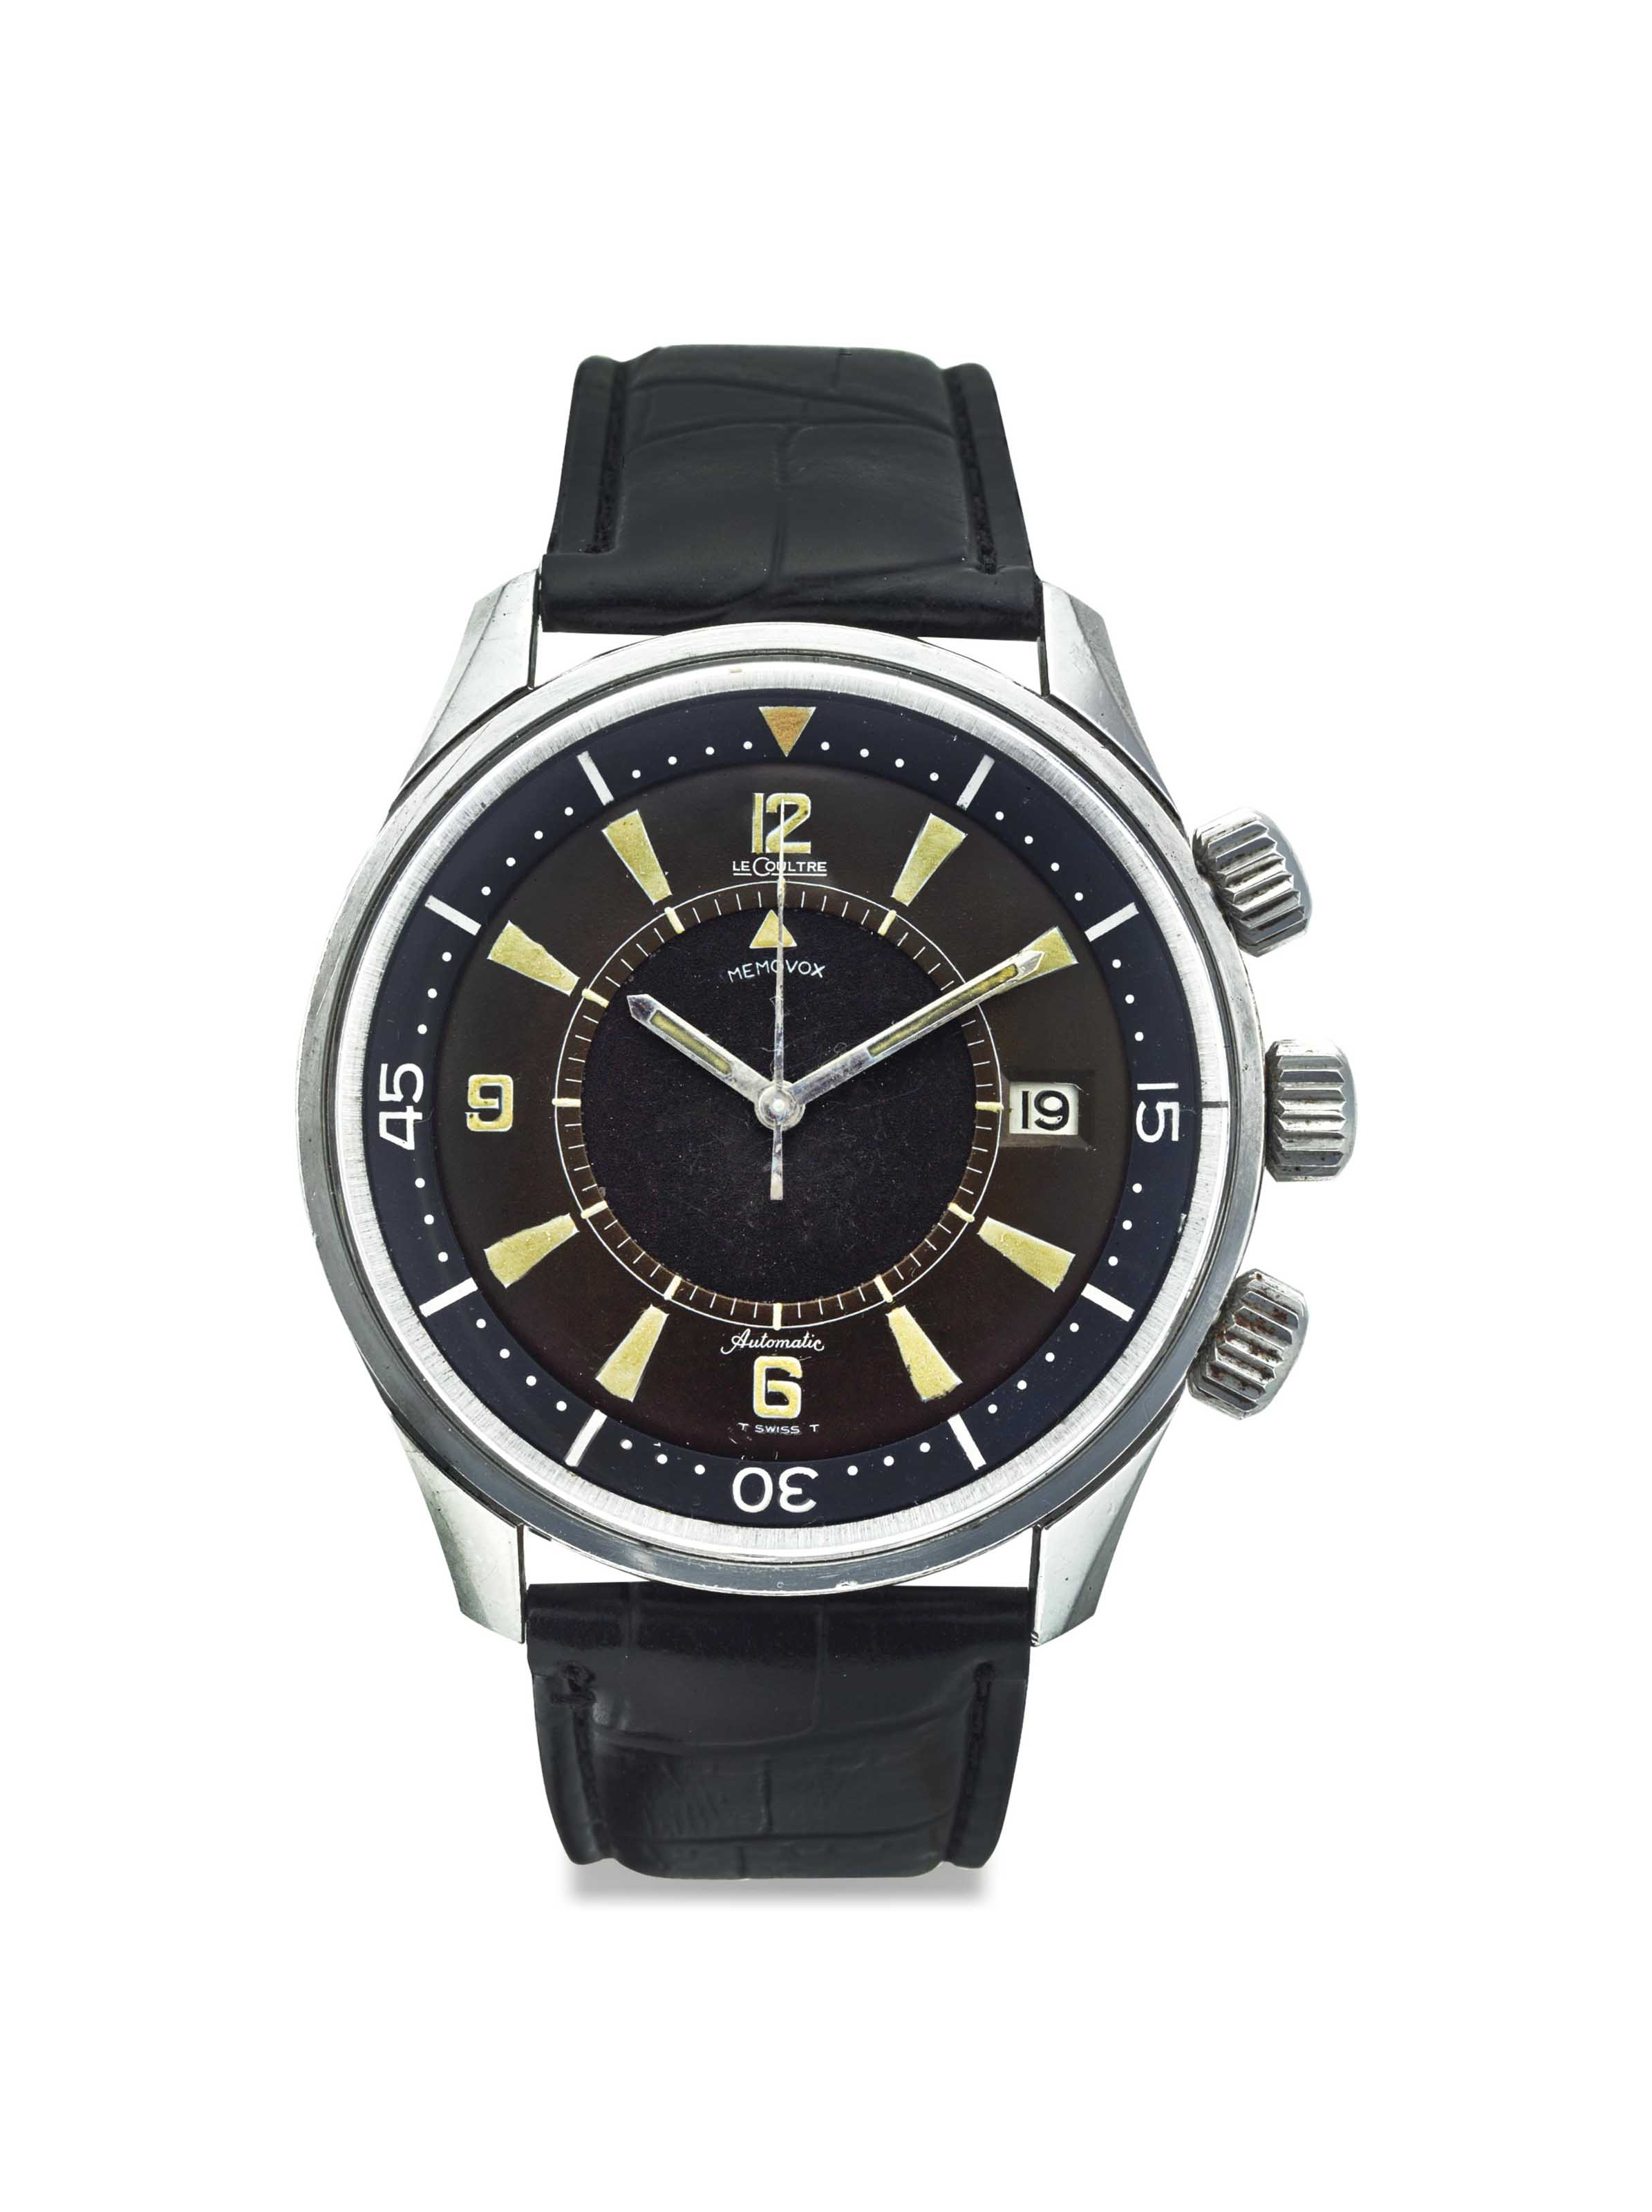 JAEGER-LECOULTRE. A STAINLESS STEEL AUTOMATIC DIVER'S WRISTWATCH WITH SWEEP CENTRE SECONDS, ALARM AND DATE